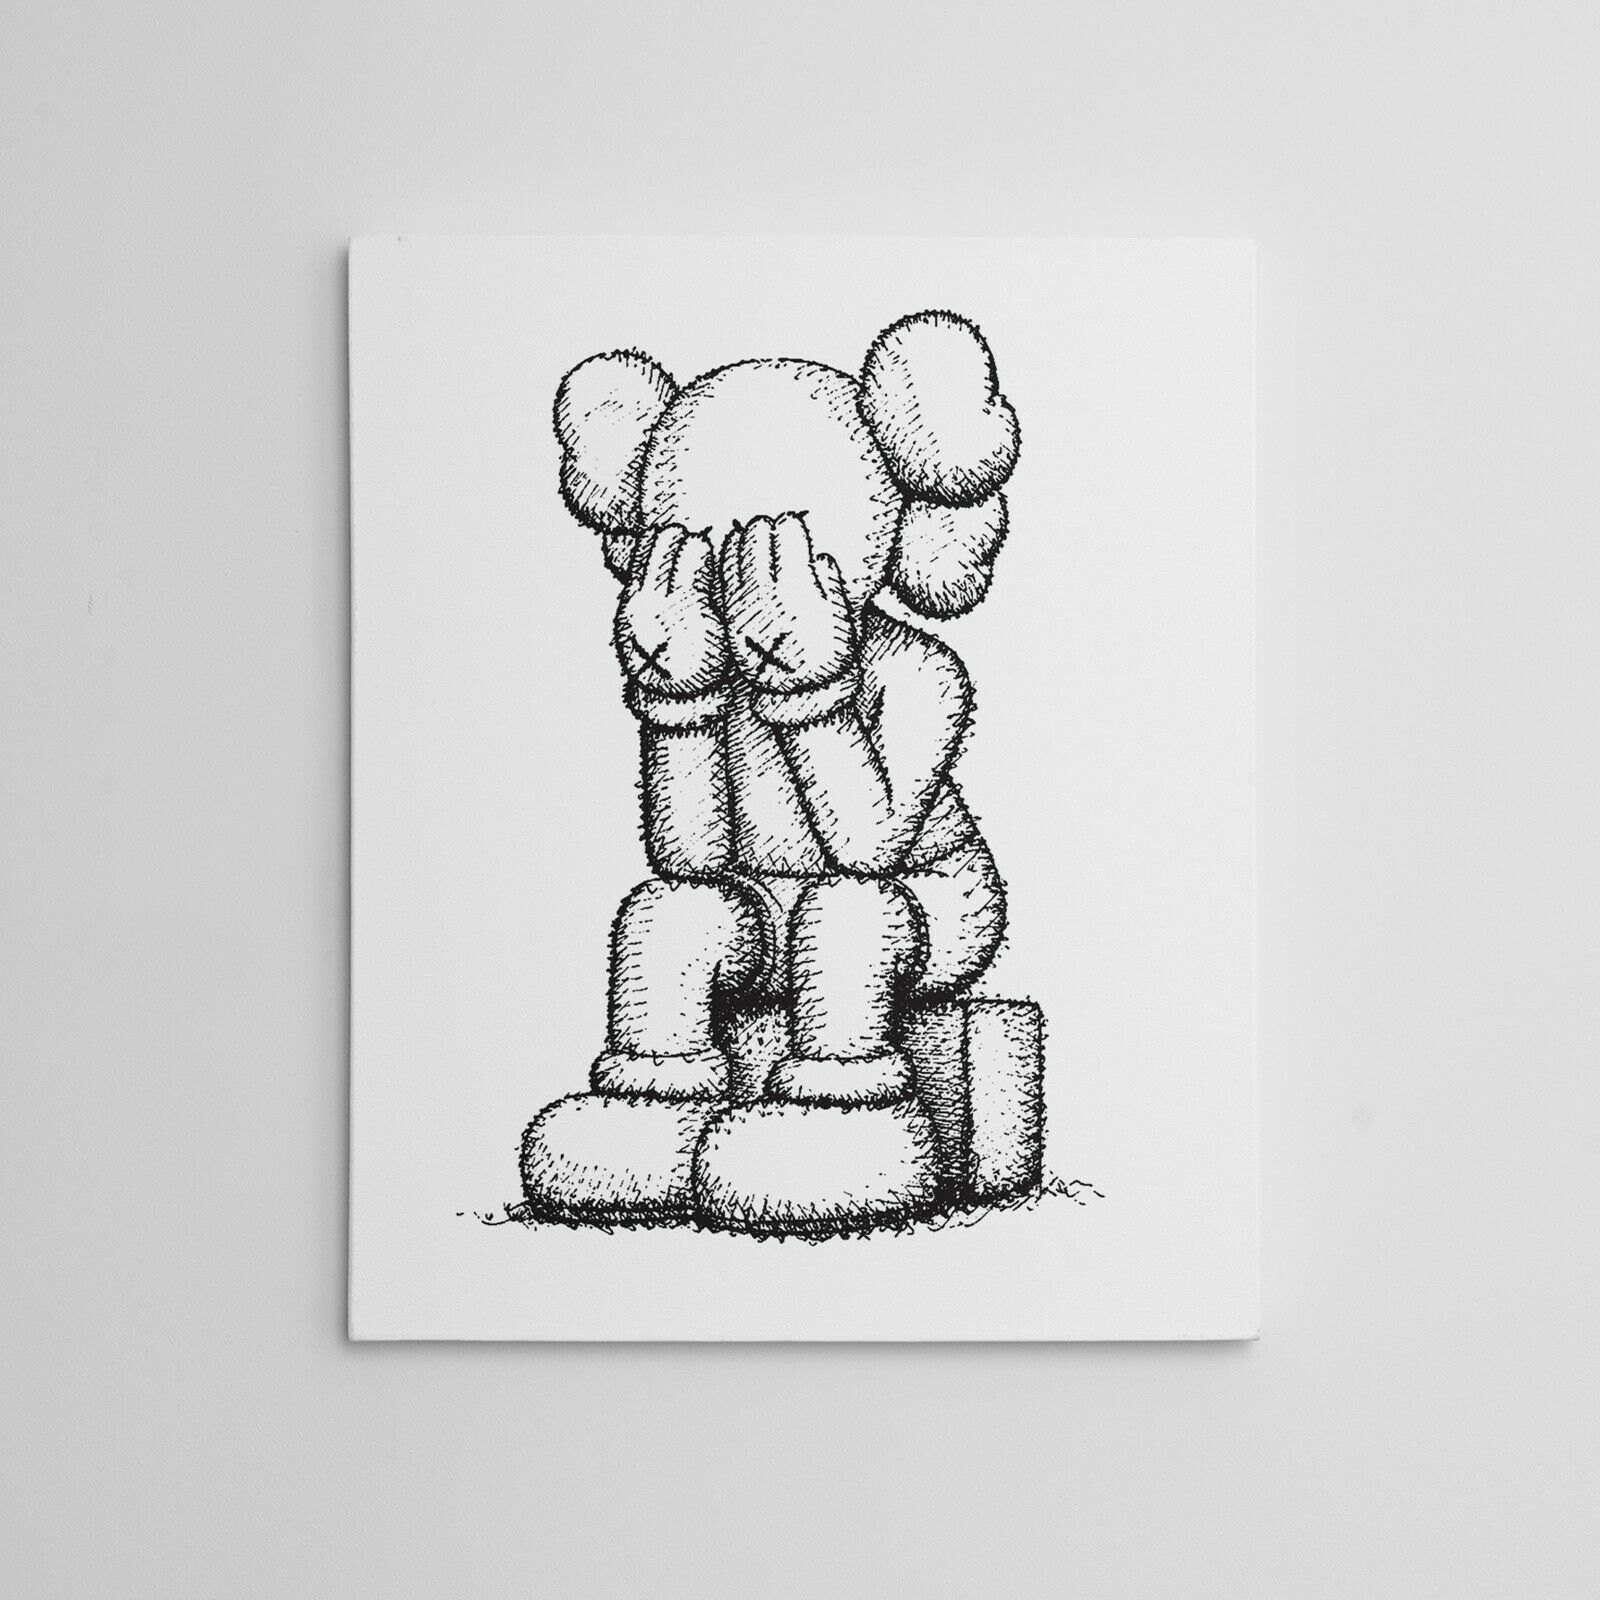 "16x20"" Kaws Medicom Companion: Passing Through Gallery Art Canvas XX Moma Hype!!"